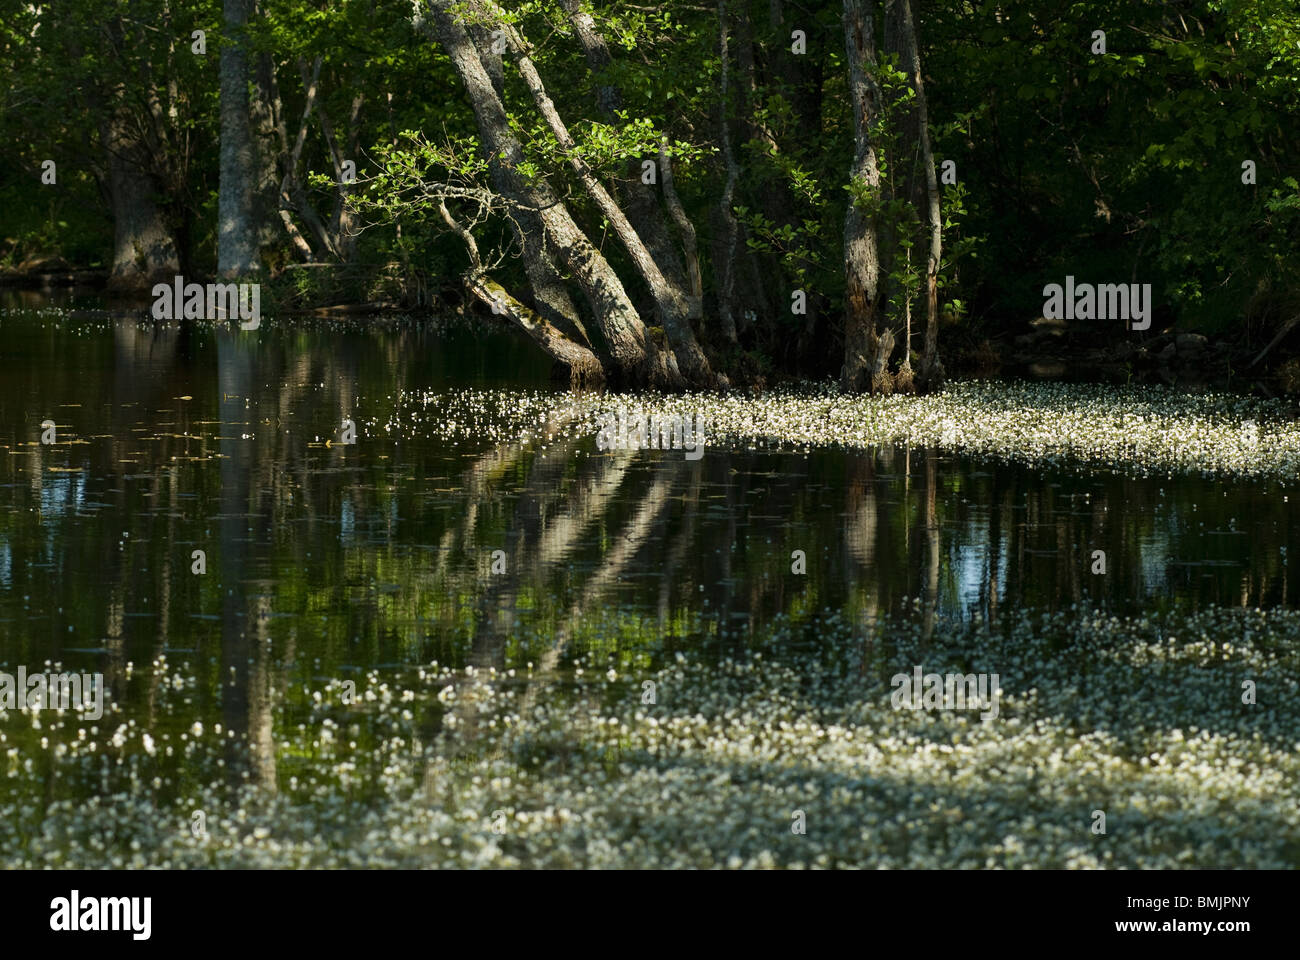 Scandinavia, Sweden, Oland, Flower floating on swamp, trees in background - Stock Image